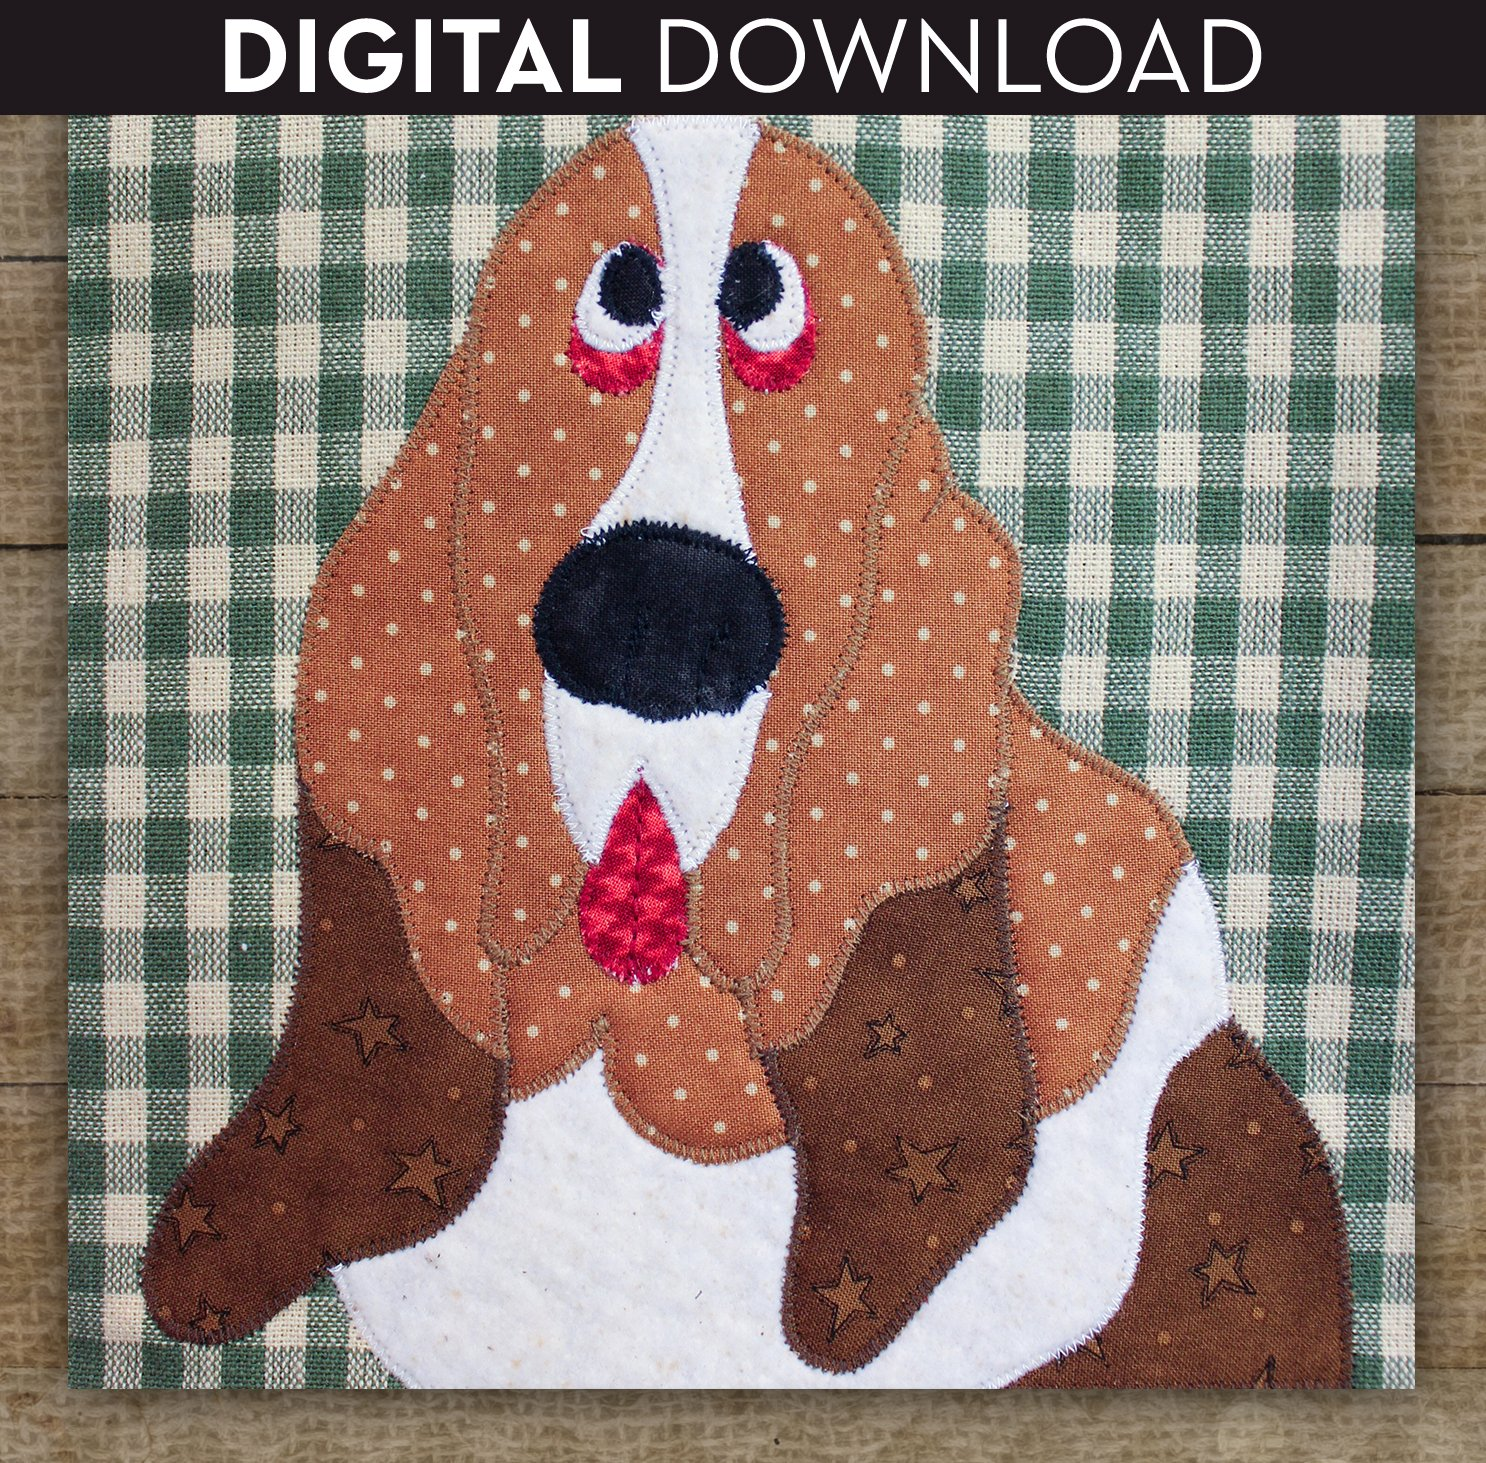 Basset Hound - Download